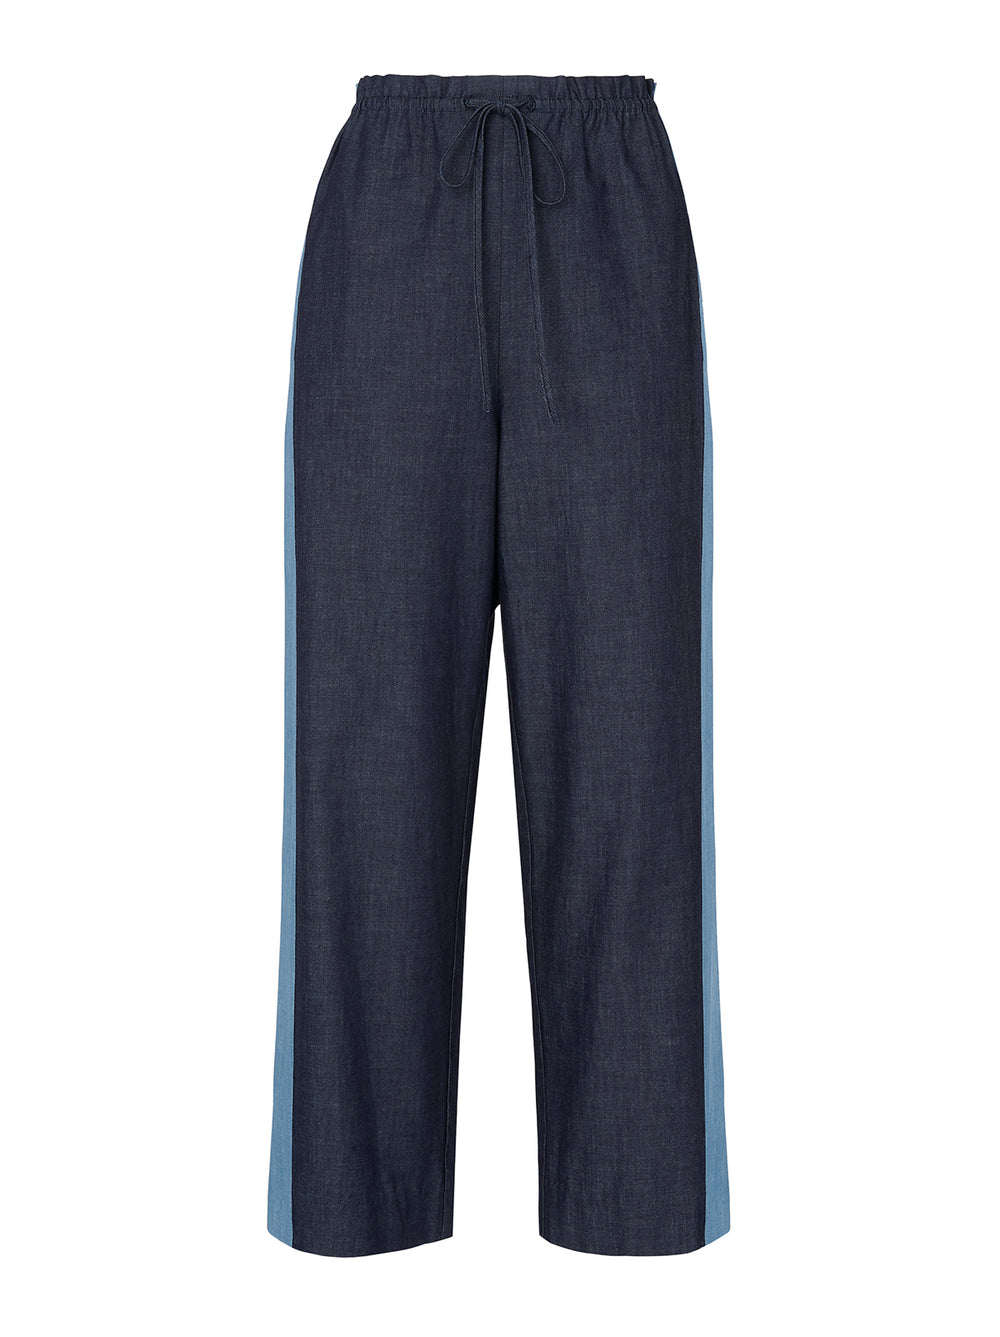 Kaia Chambray Trousers Mannequin by KITRI Studio